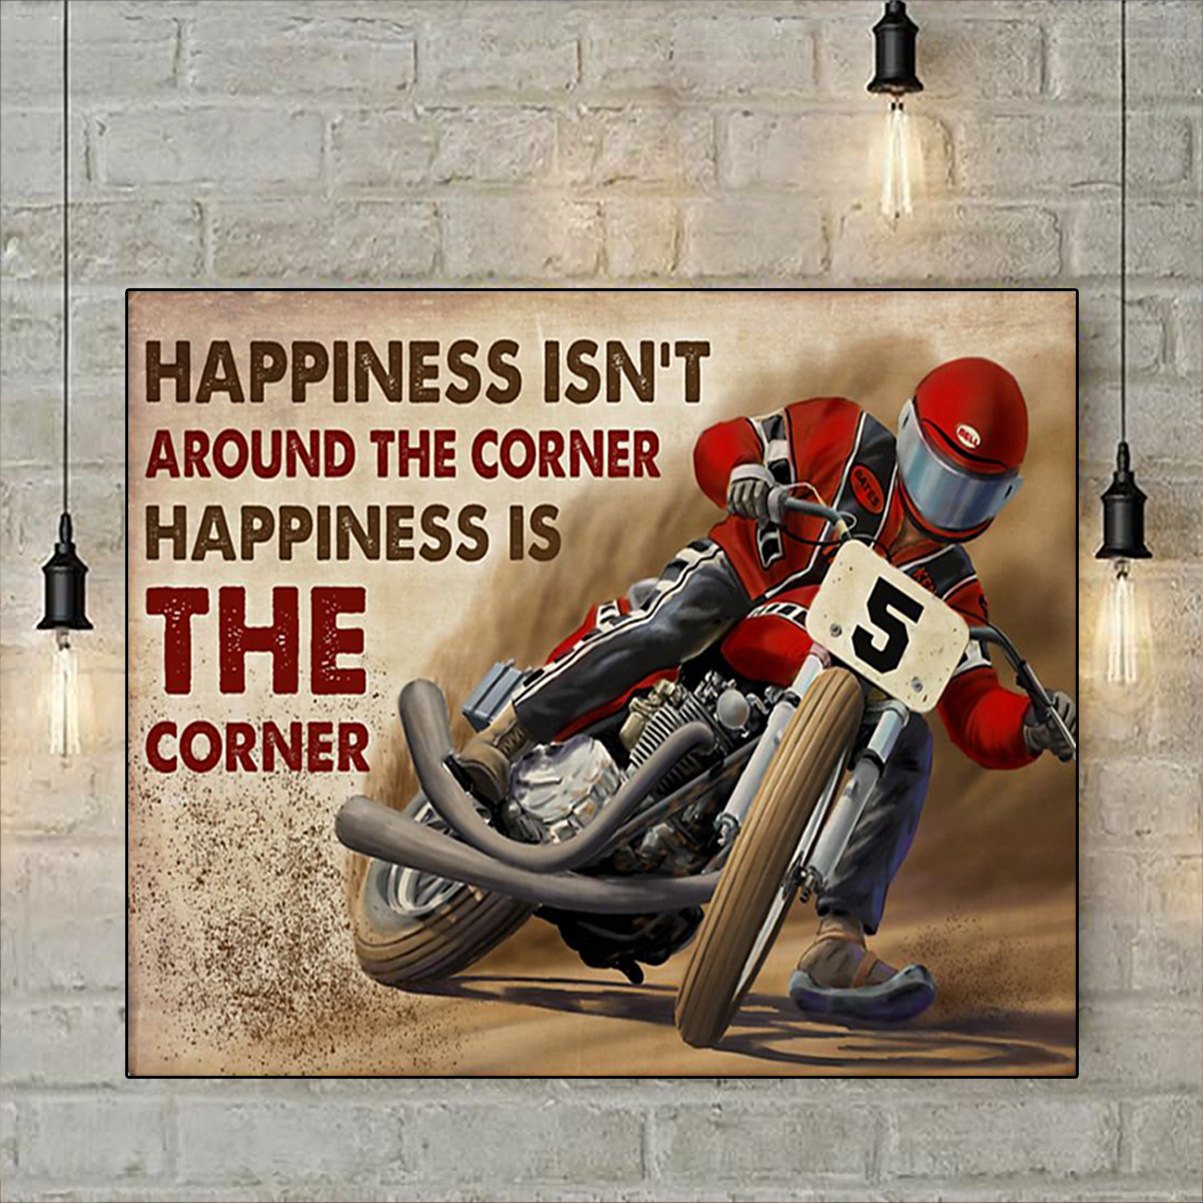 Flat track racing happiness isn't around the corner poster A1